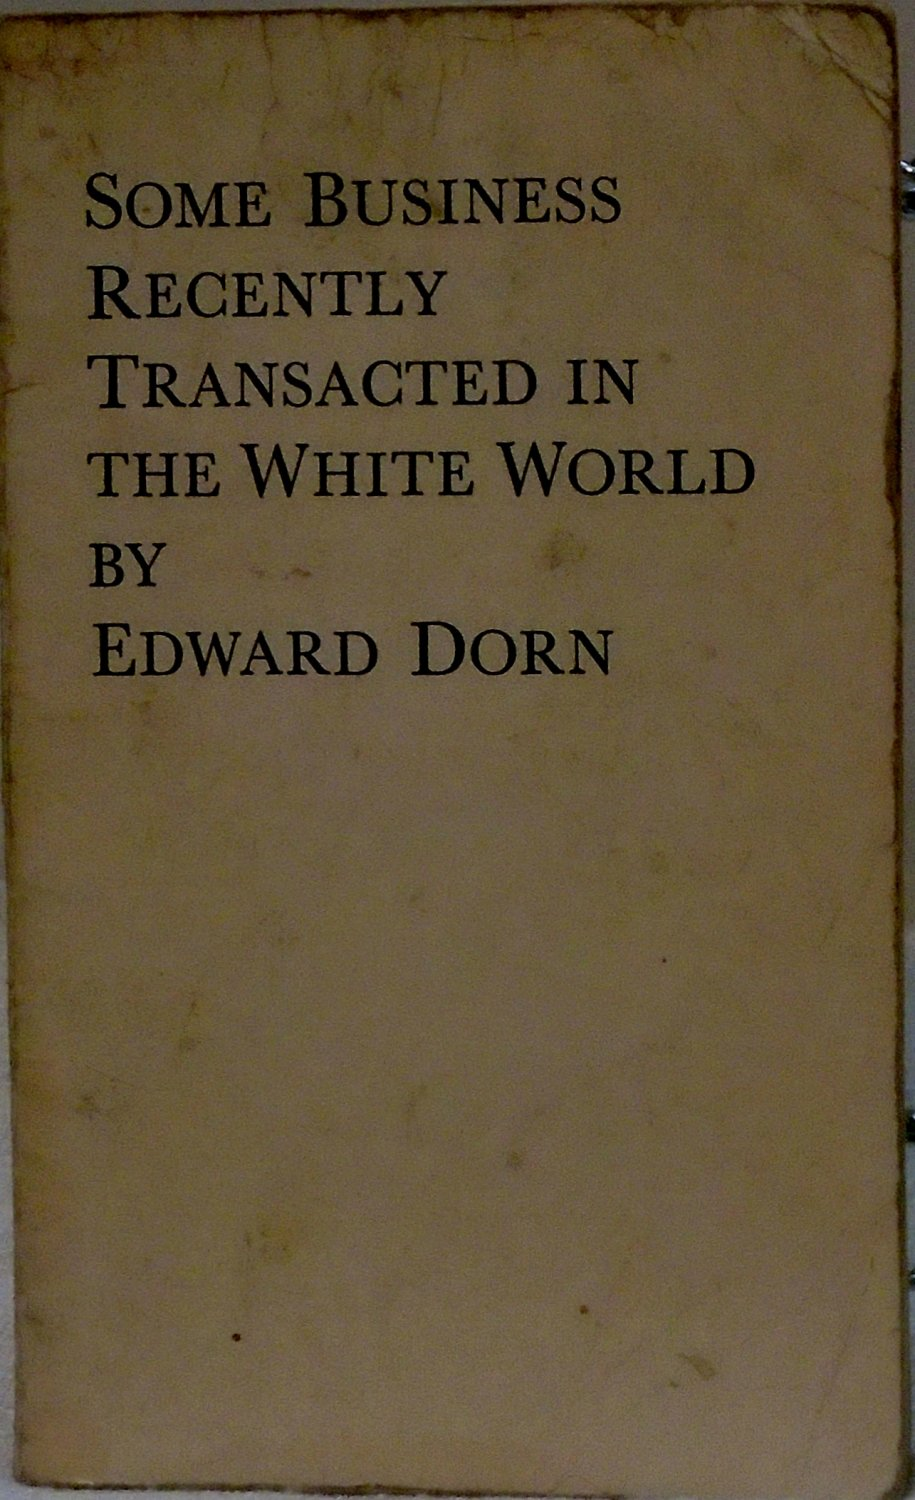 Some Business Recently Transacted in the White World - Edward Dorn